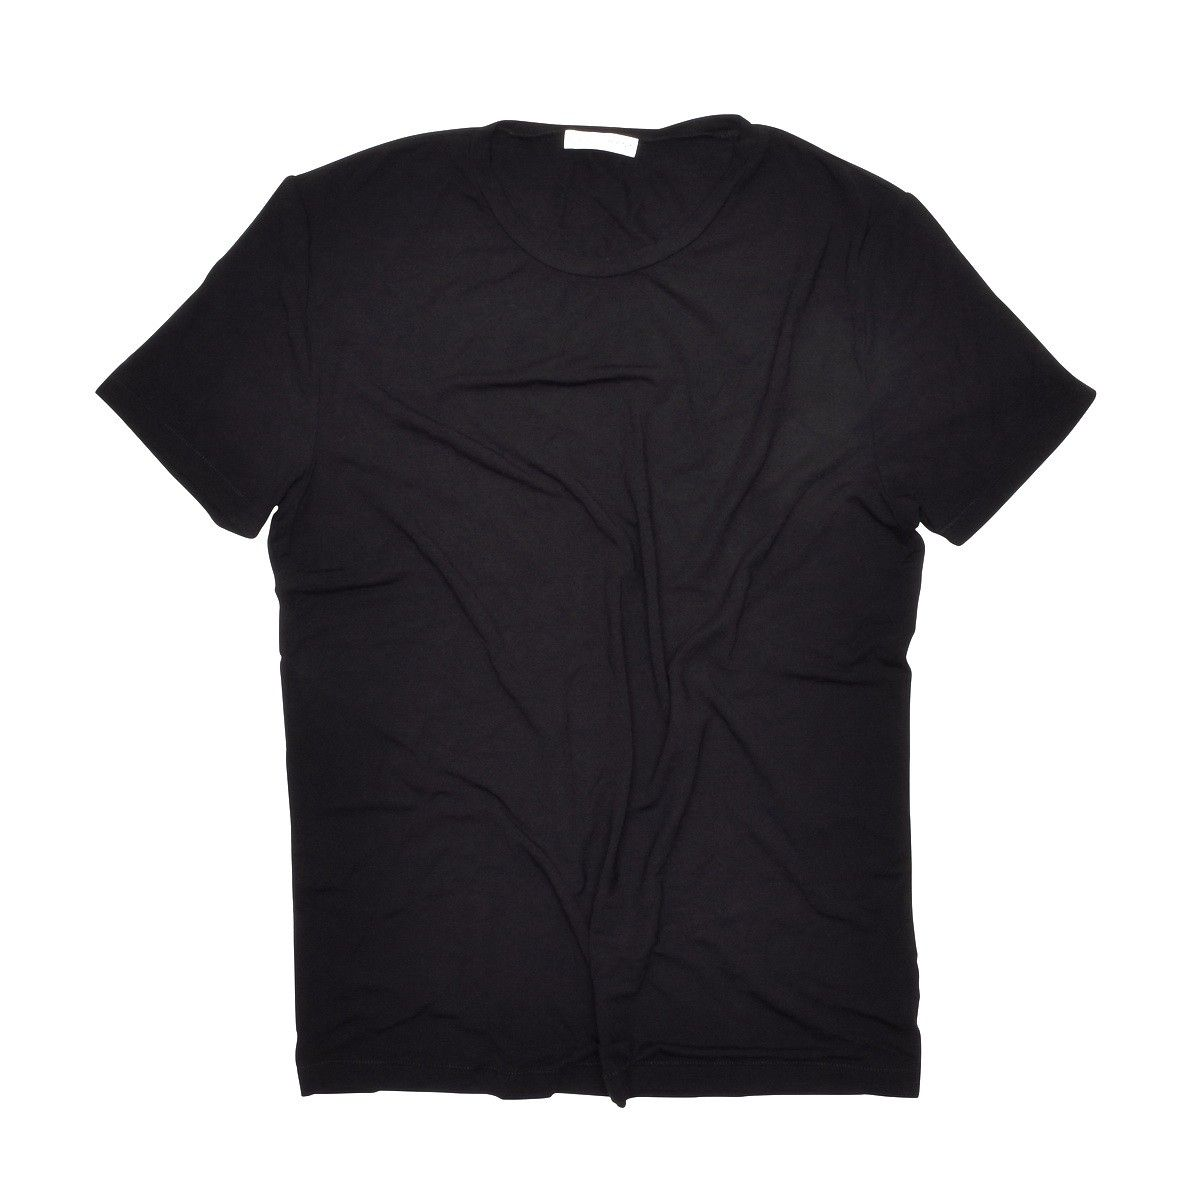 KIEFERMANN - Herren T-Shirt - Damian Black